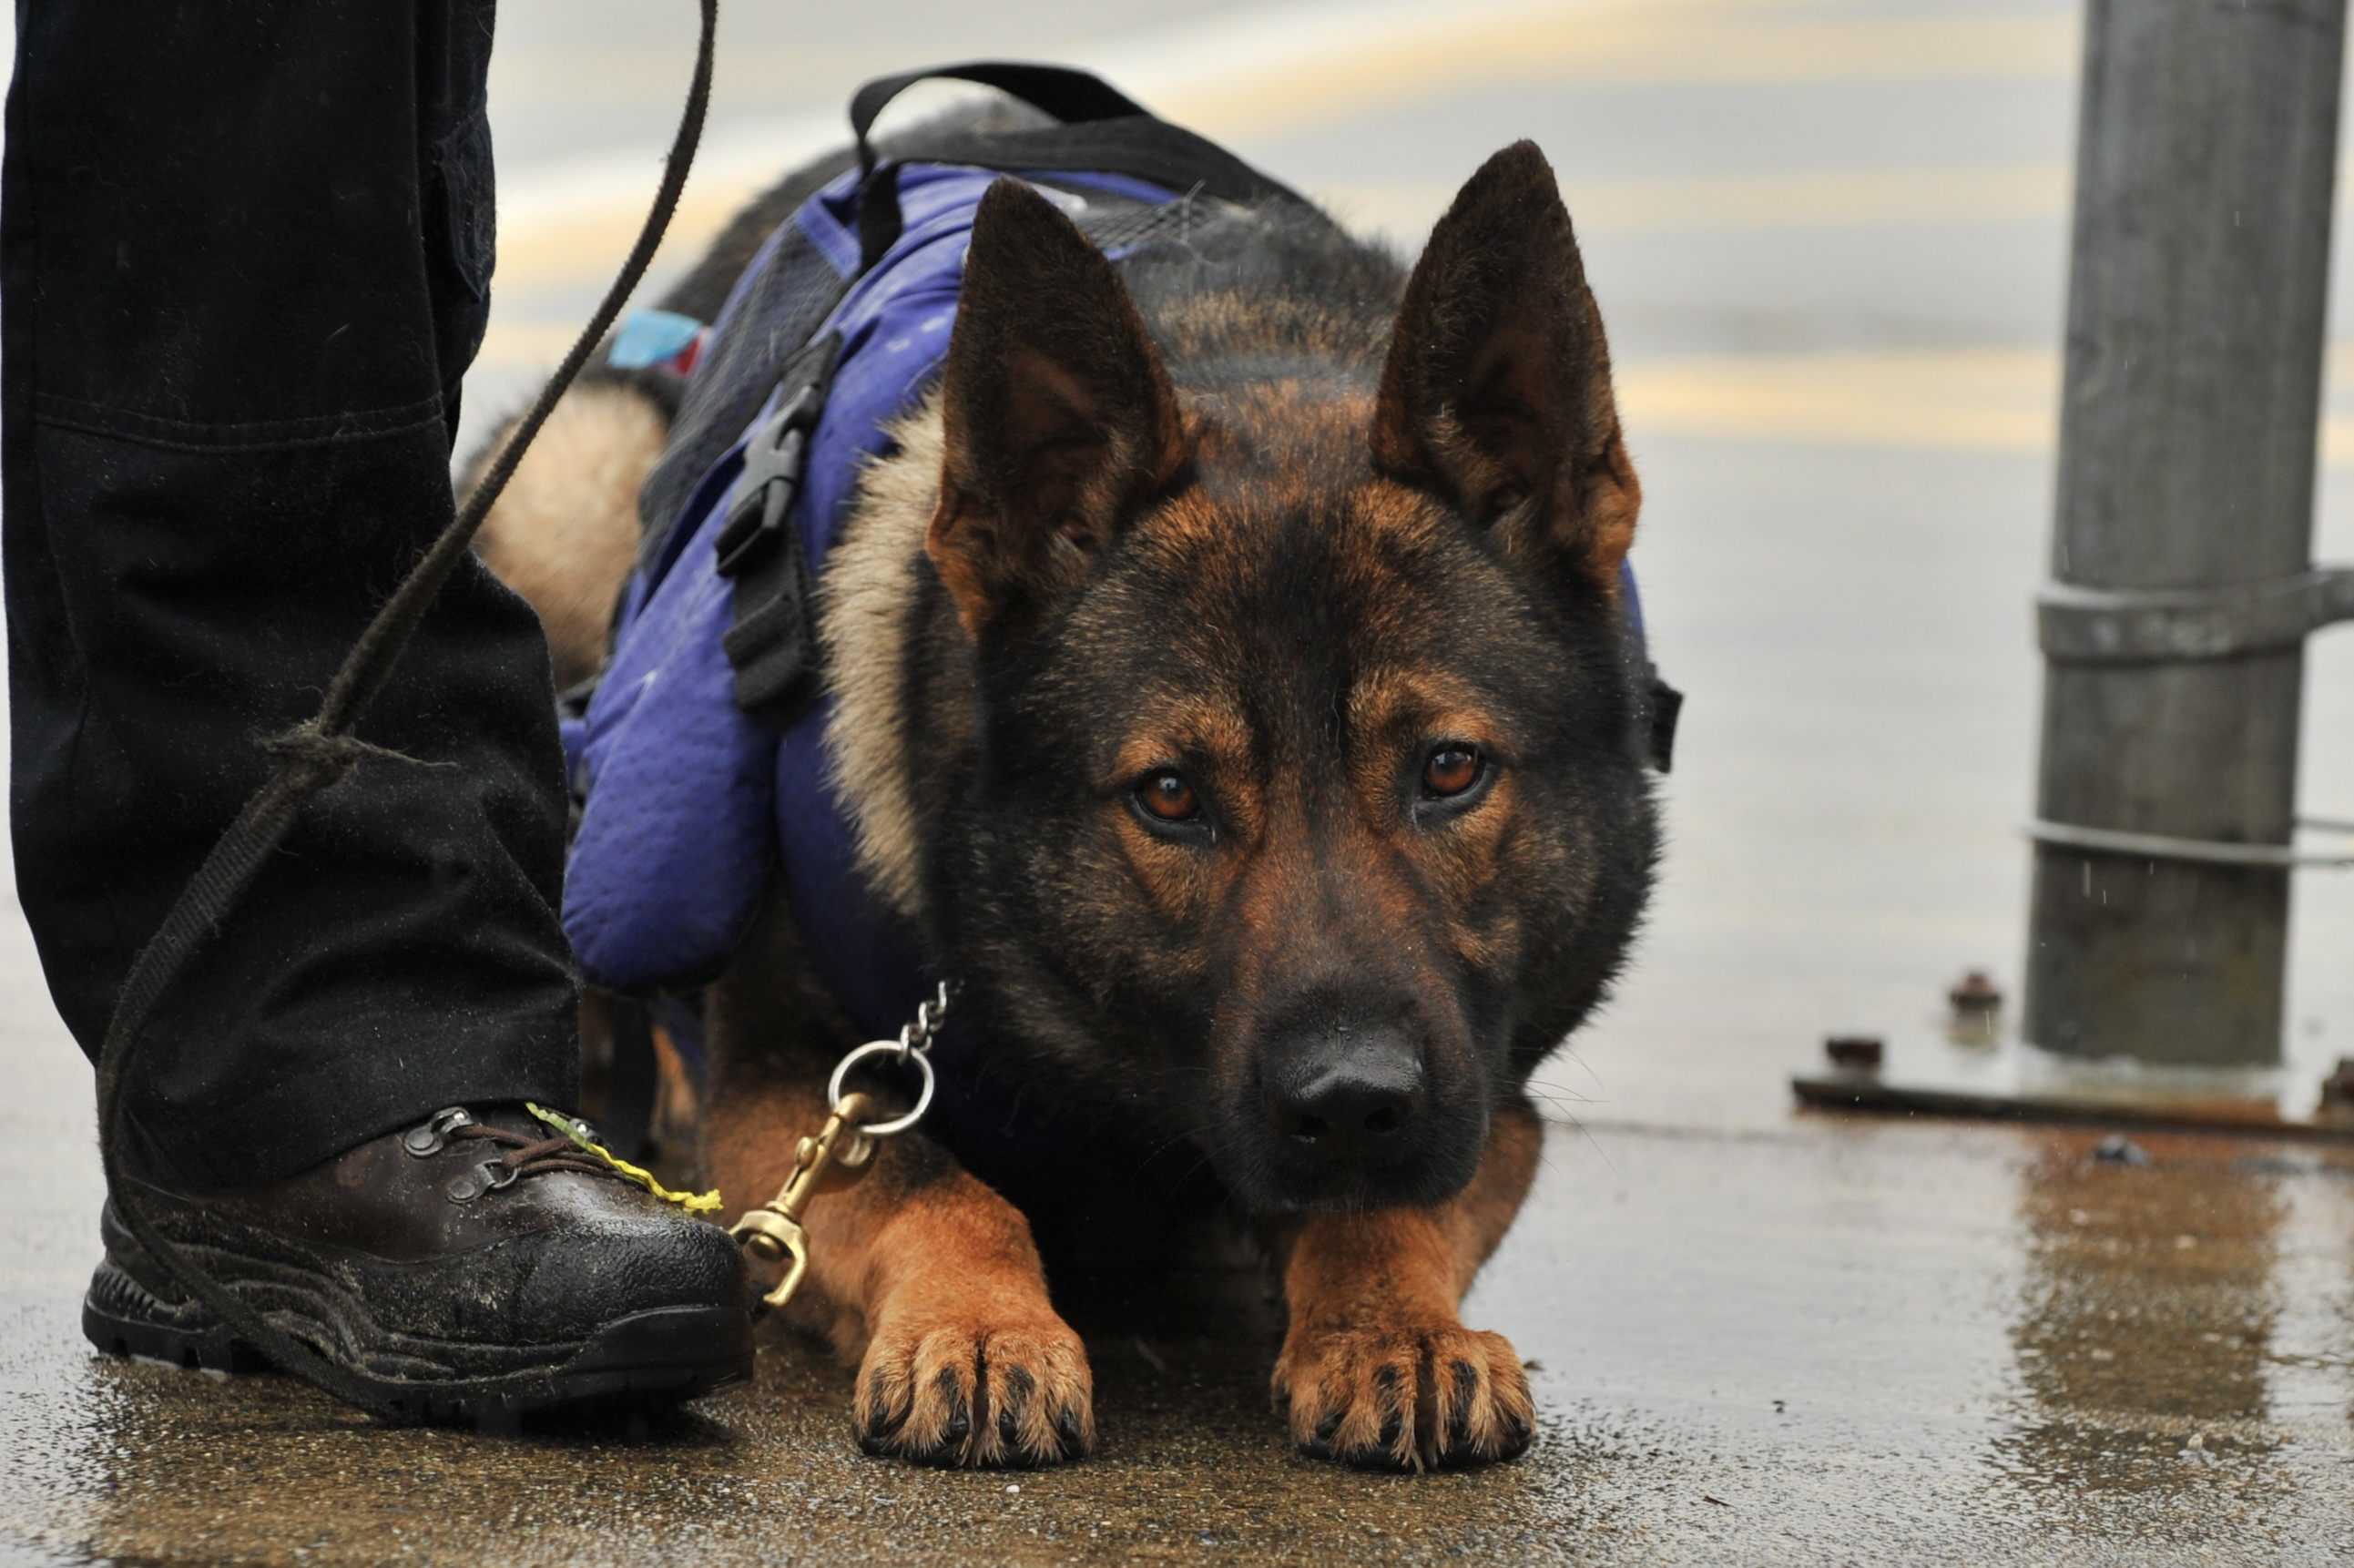 Image from: Vancouver Police Dog Squad Website